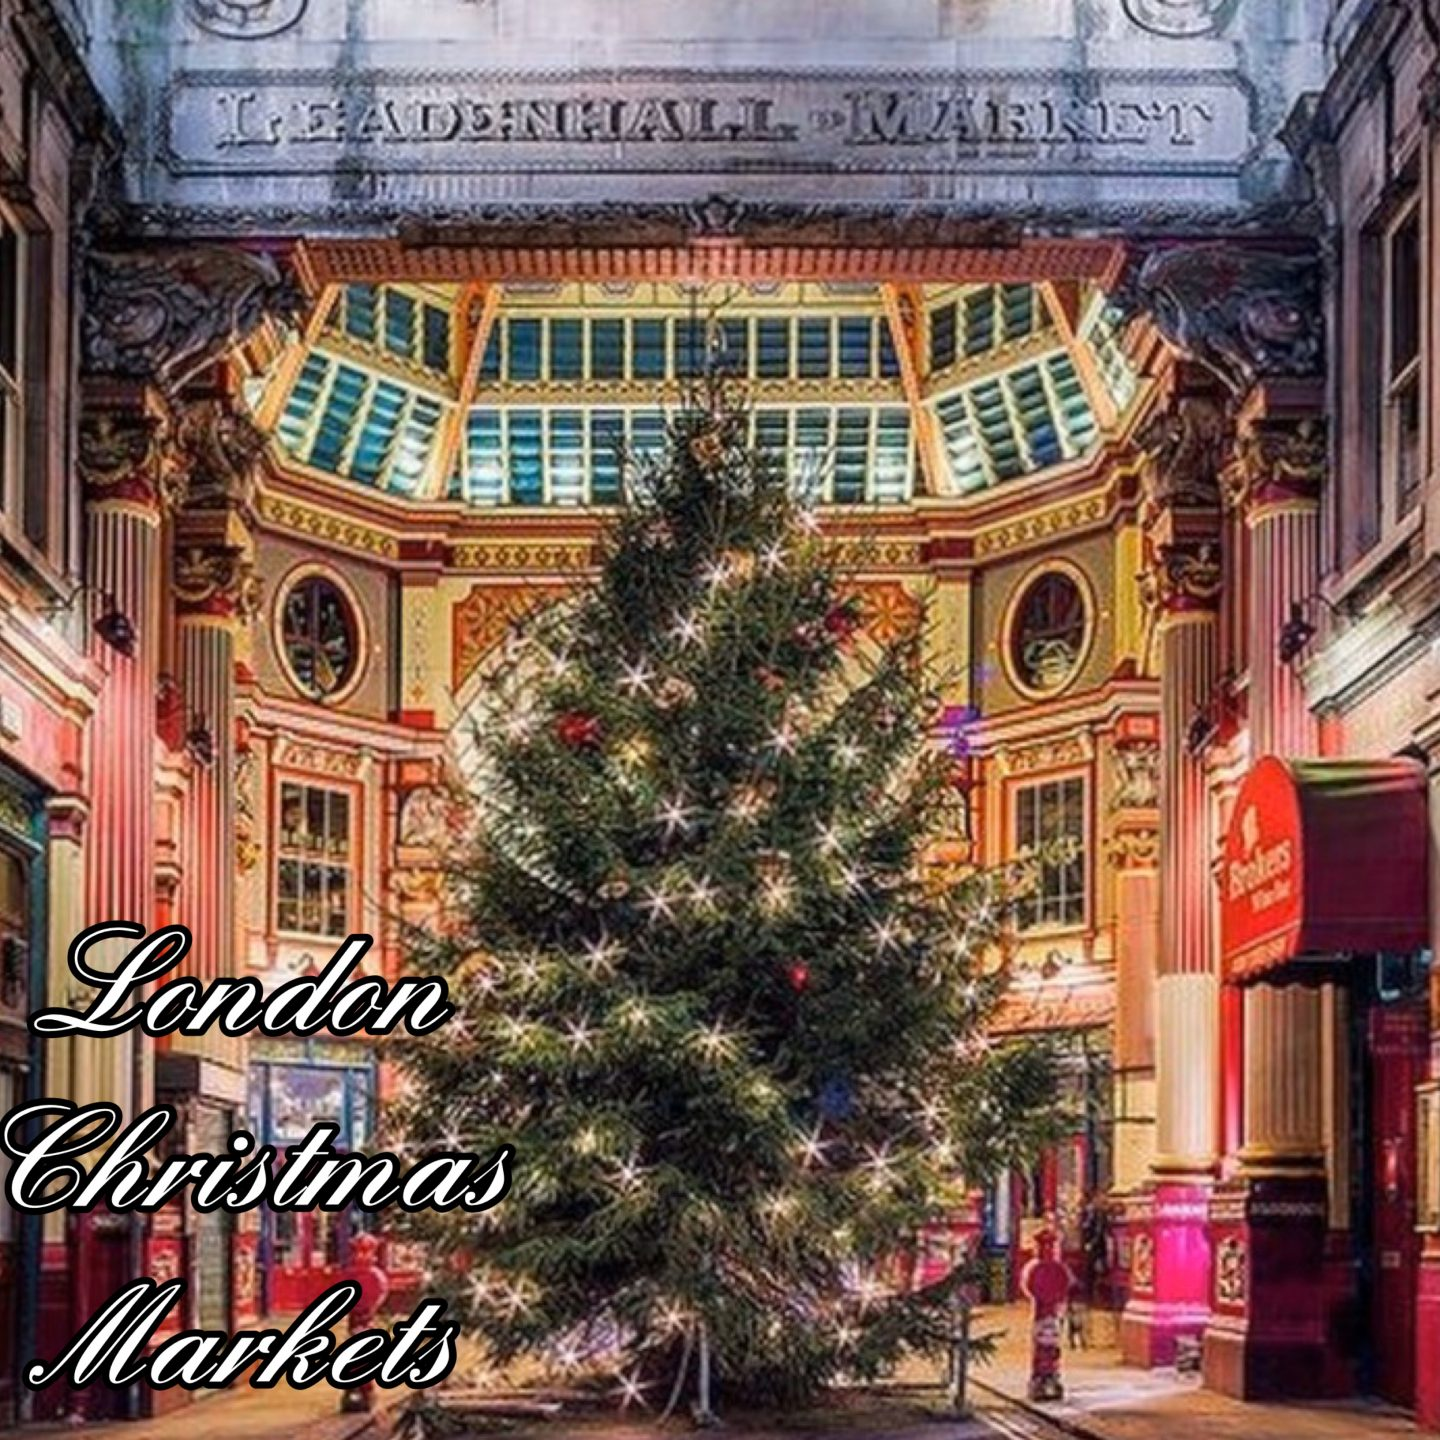 London Christmas Markets 2019 | metrogypsie